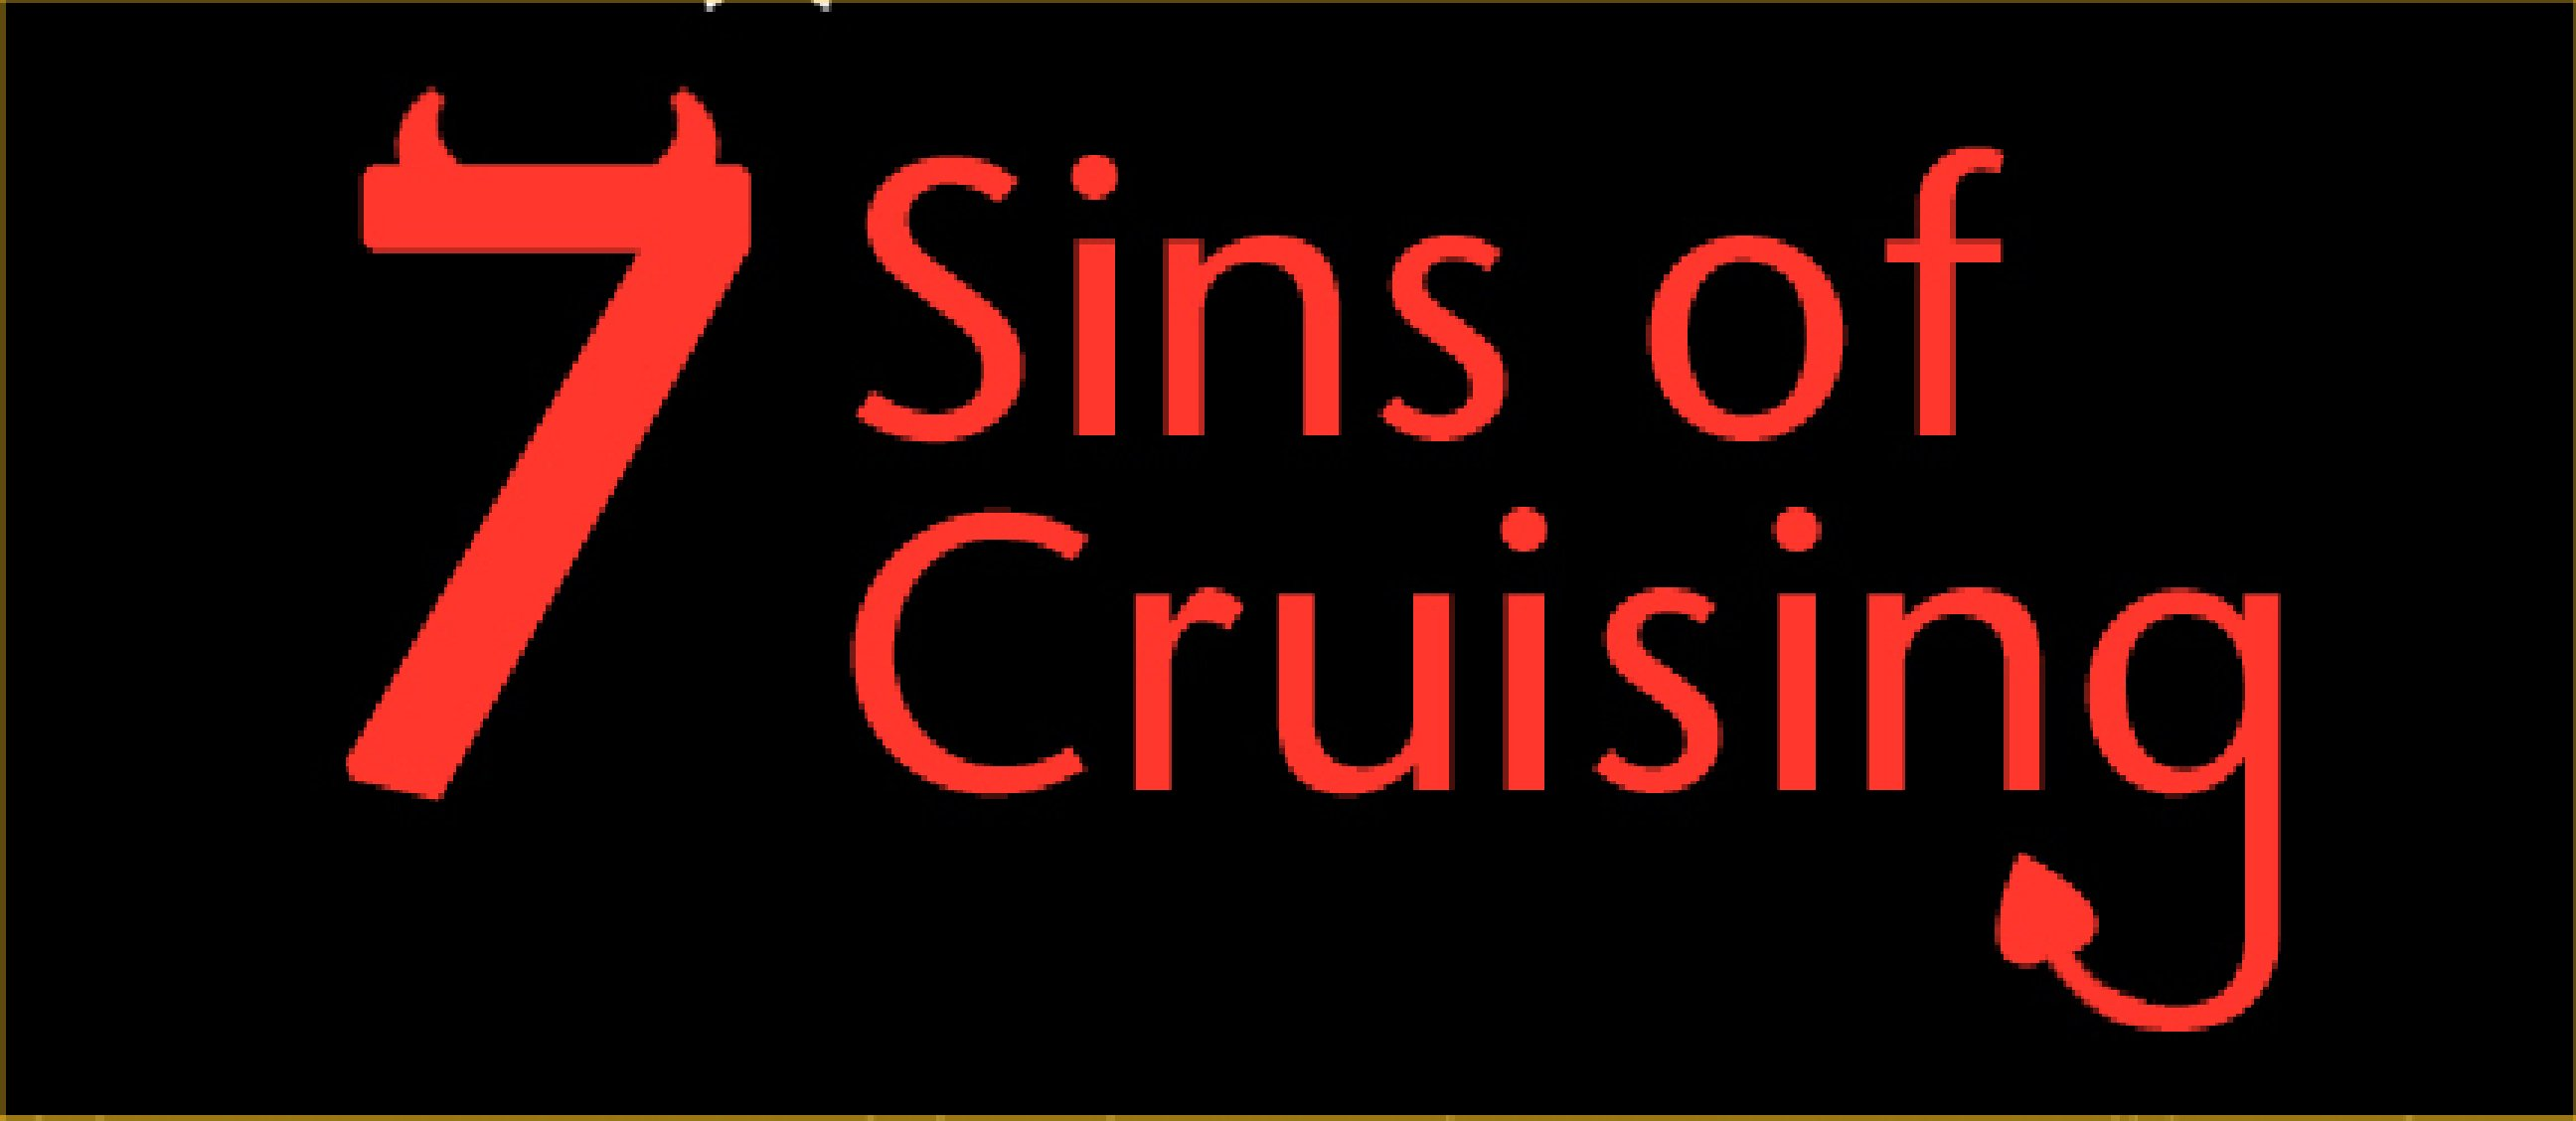 Seven Sins of Cruising: An Infographic